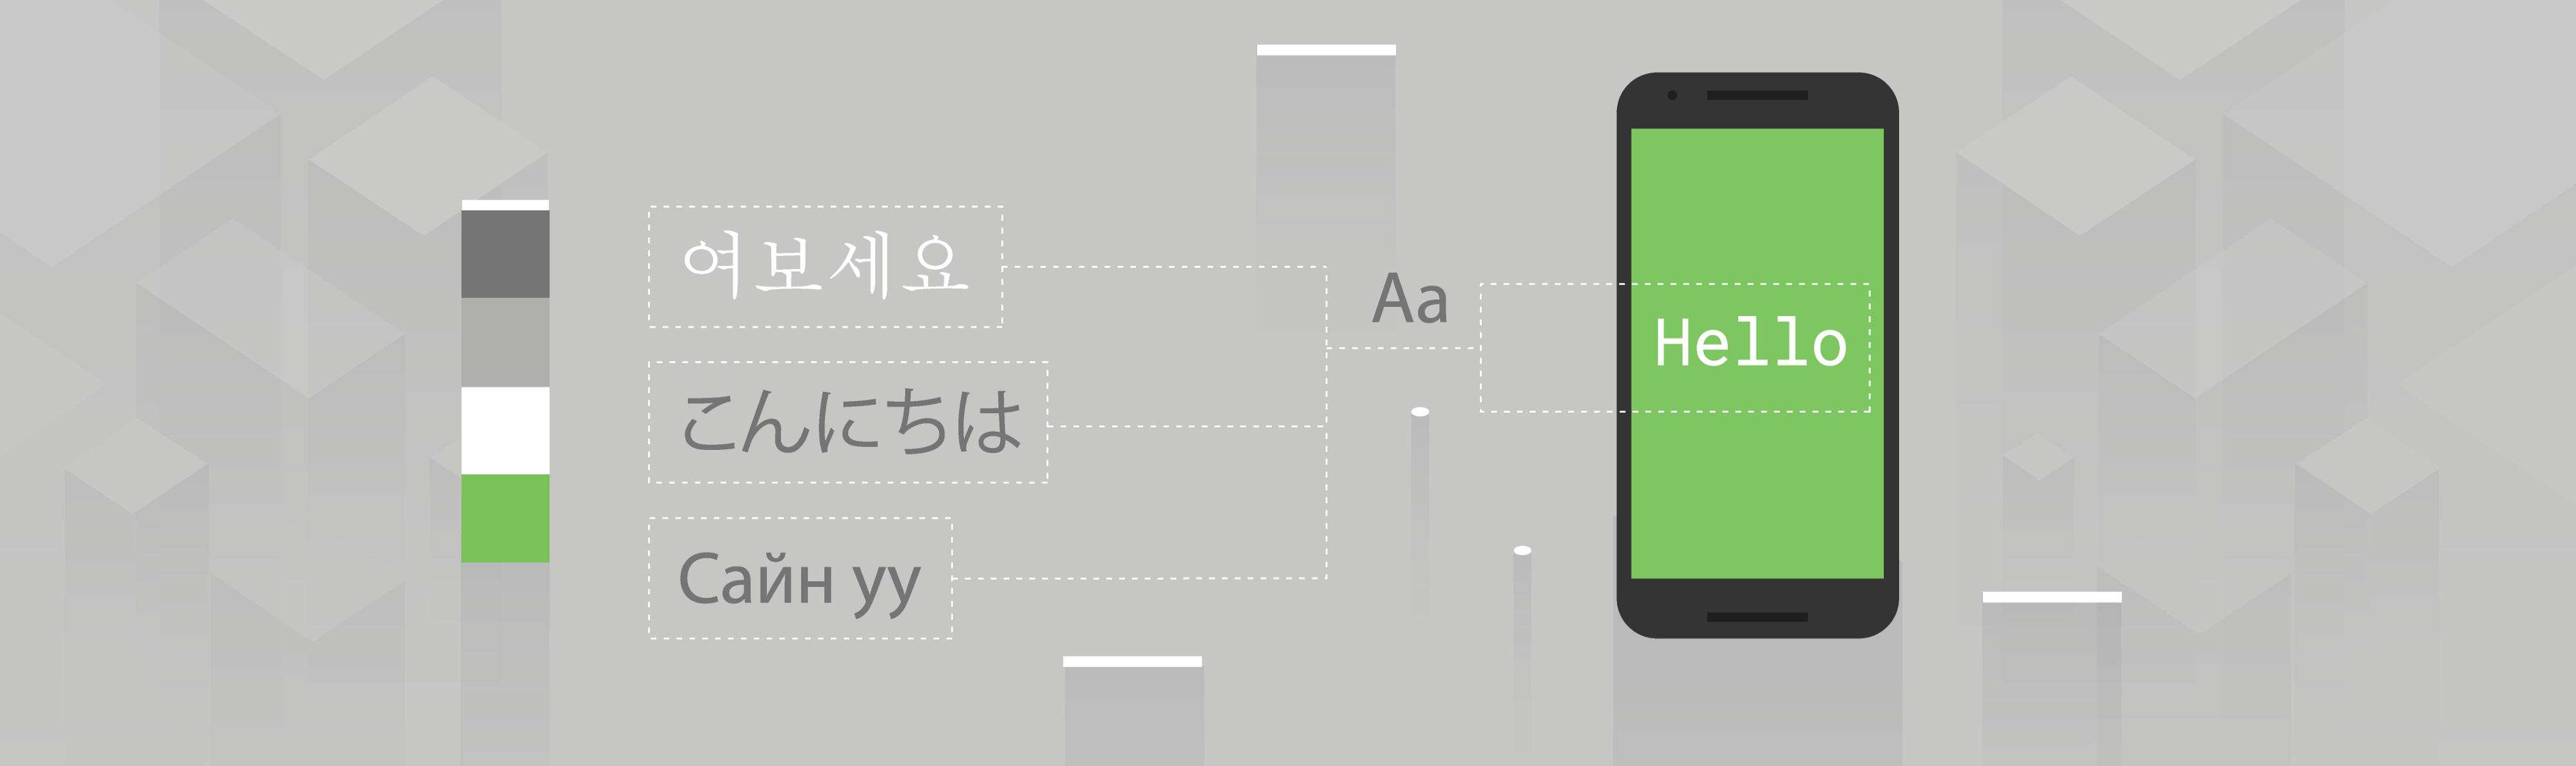 Styling internationalized text in Android - Android